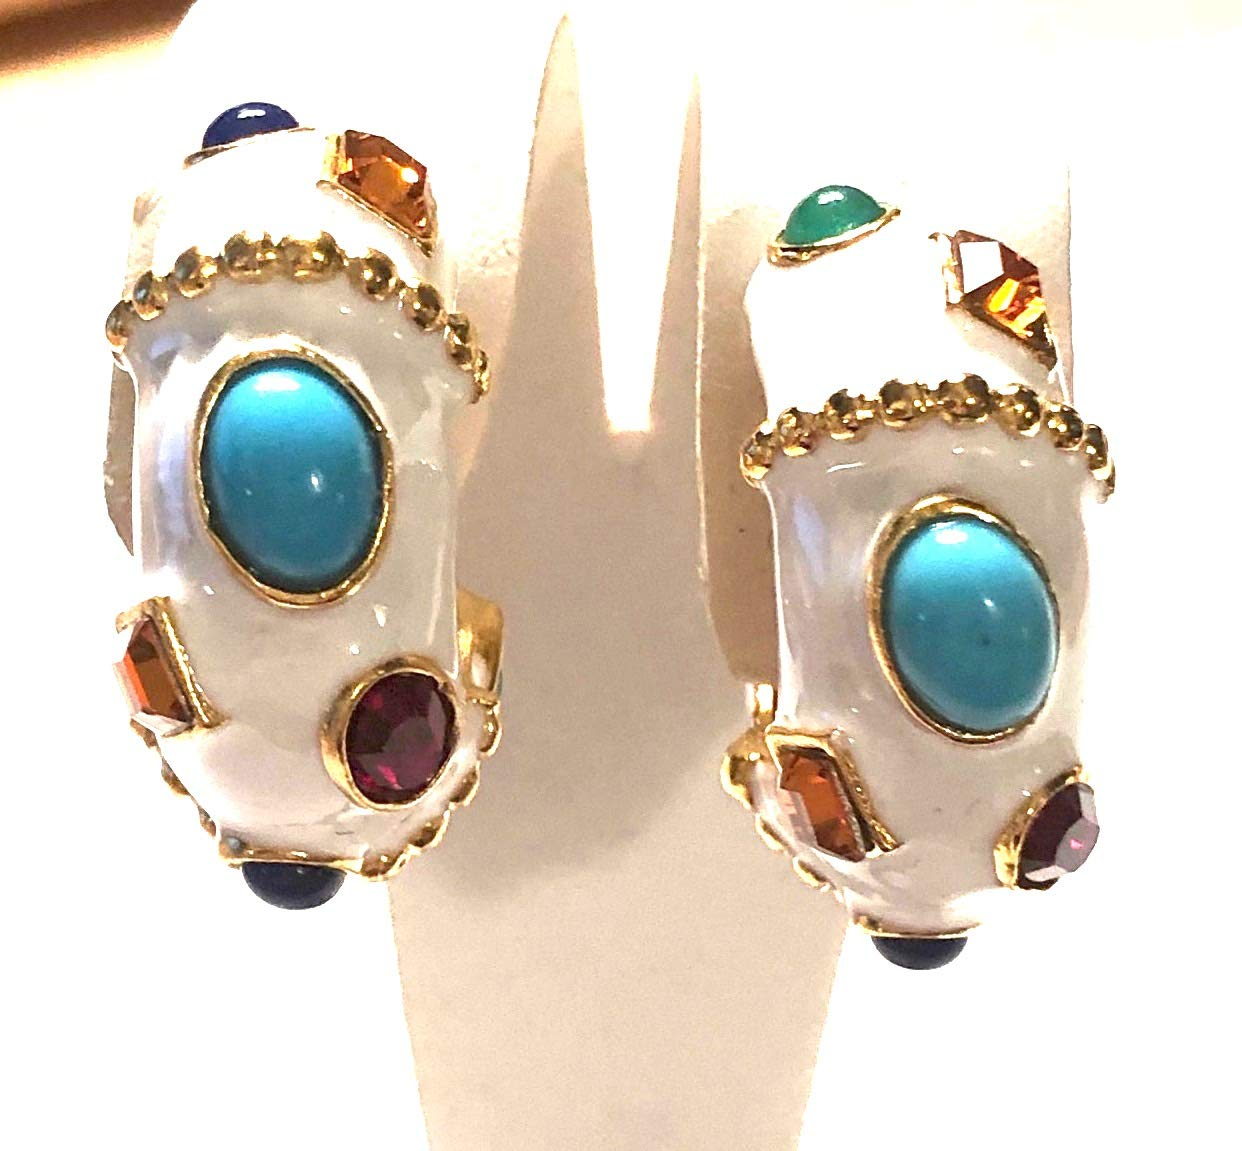 Kenneth Jay Lane, White Enamel Gold Clip Earrings with Turquoise CABOCHON and GEM Stones Accents